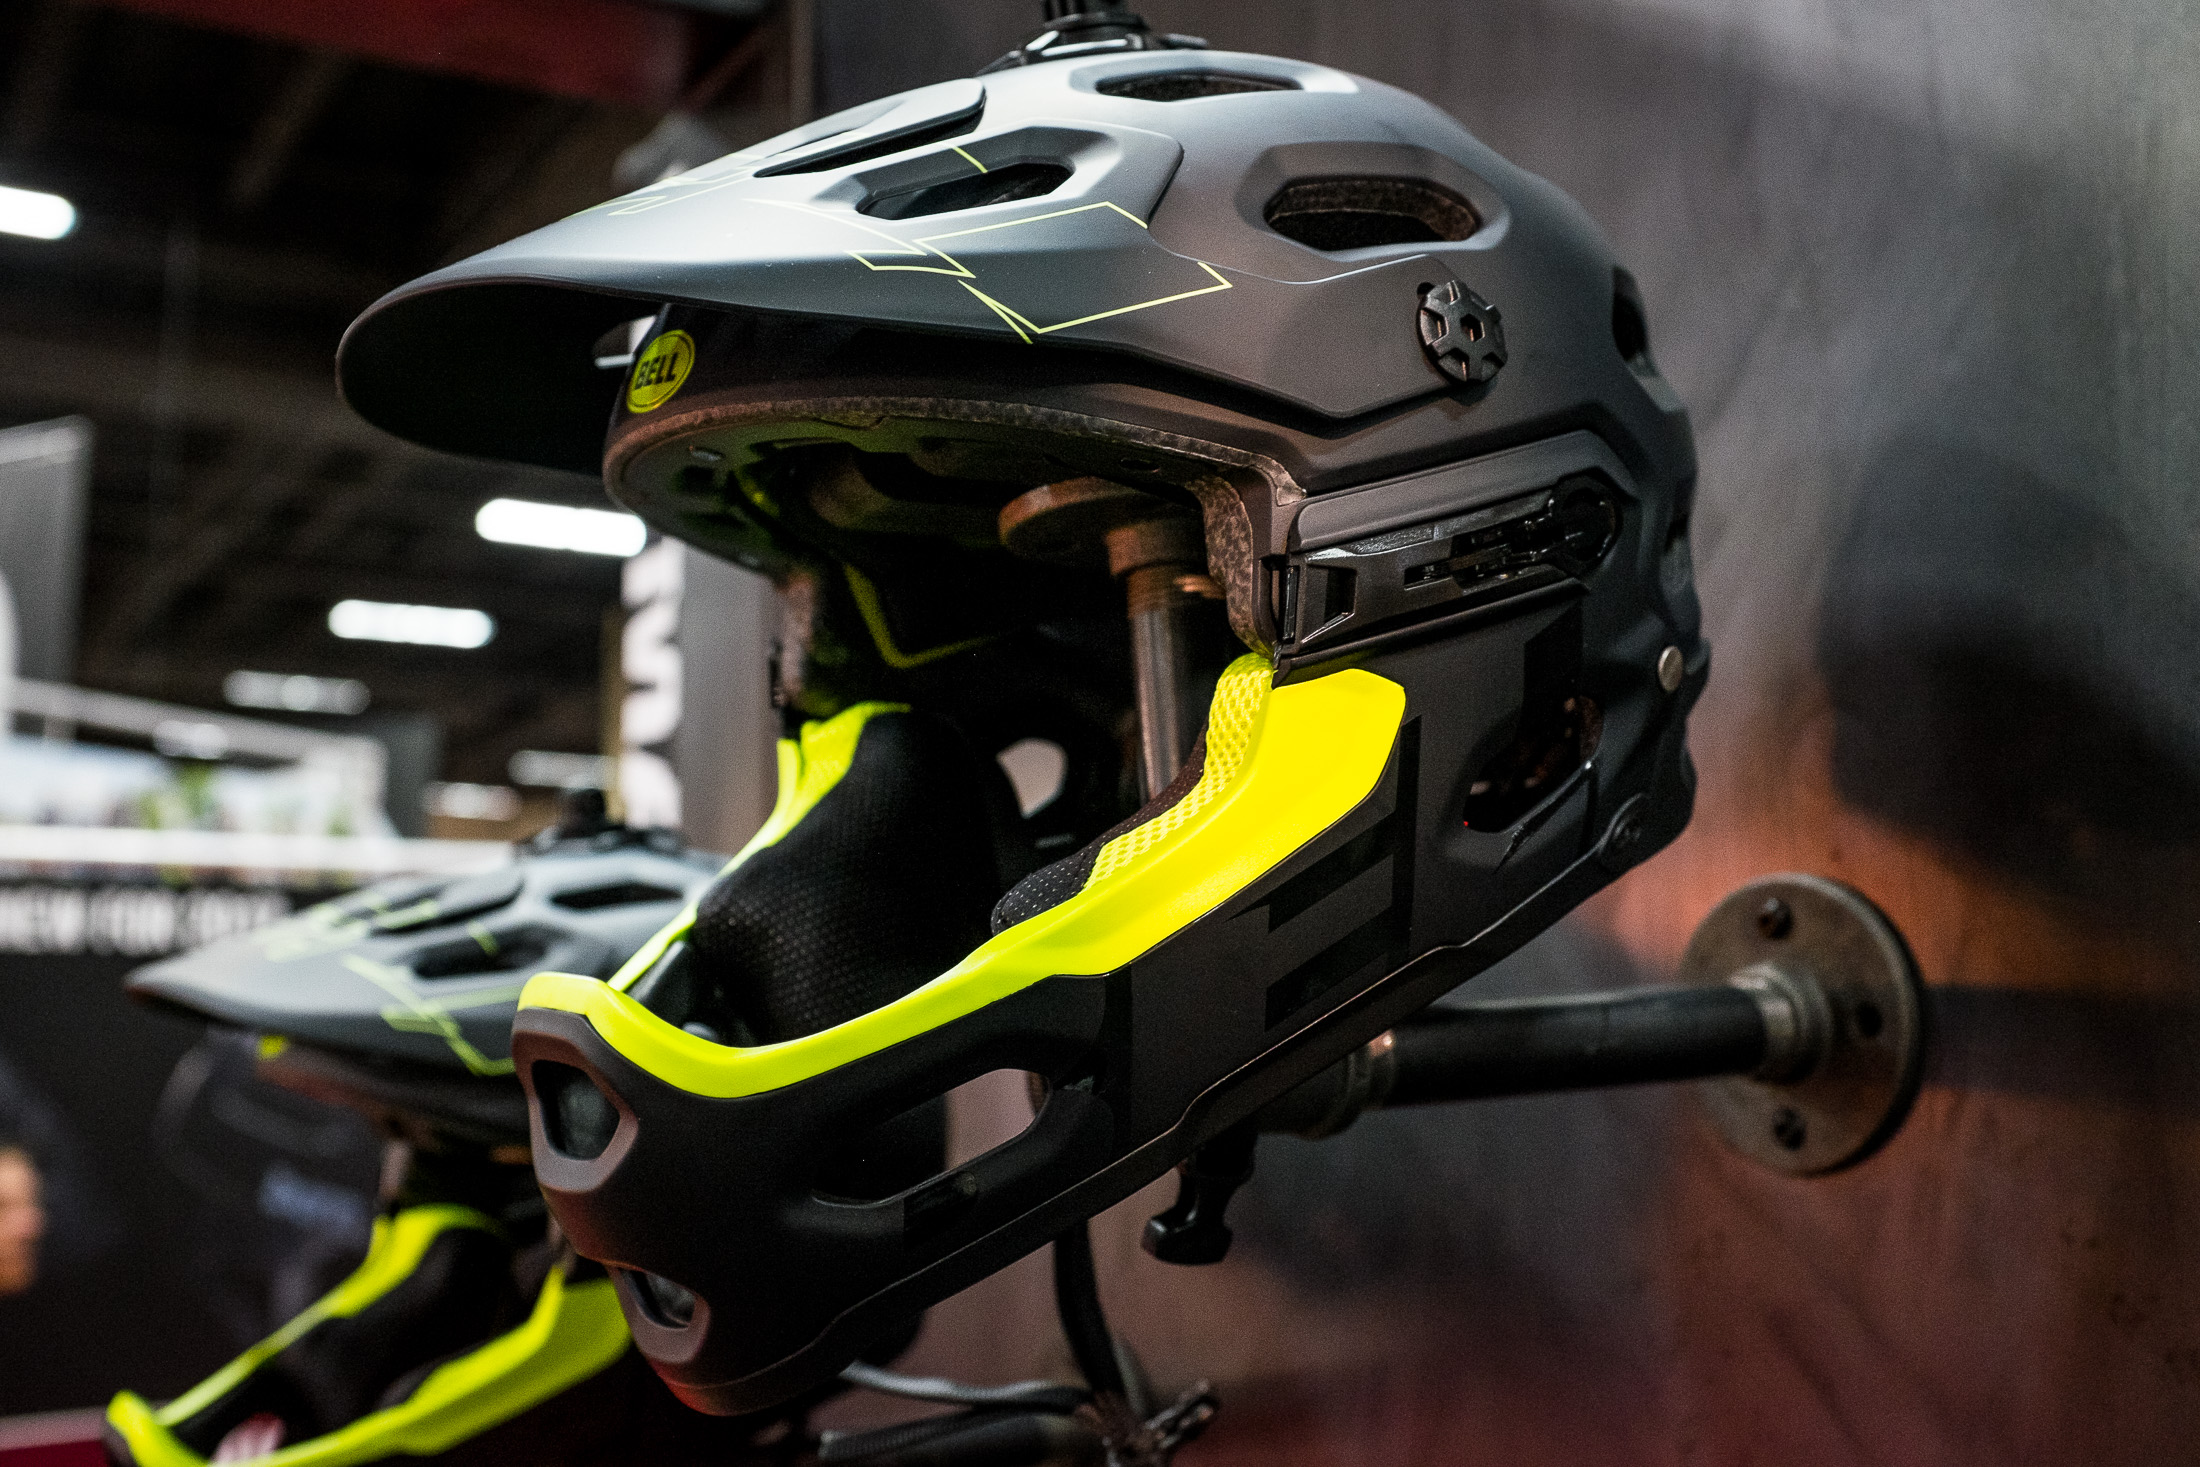 Drag Racing Helmets >> Bell Super 3 and 3R - INTERBIKE - 2017 Mountain Bike Apparel and Protective Gear - Mountain ...